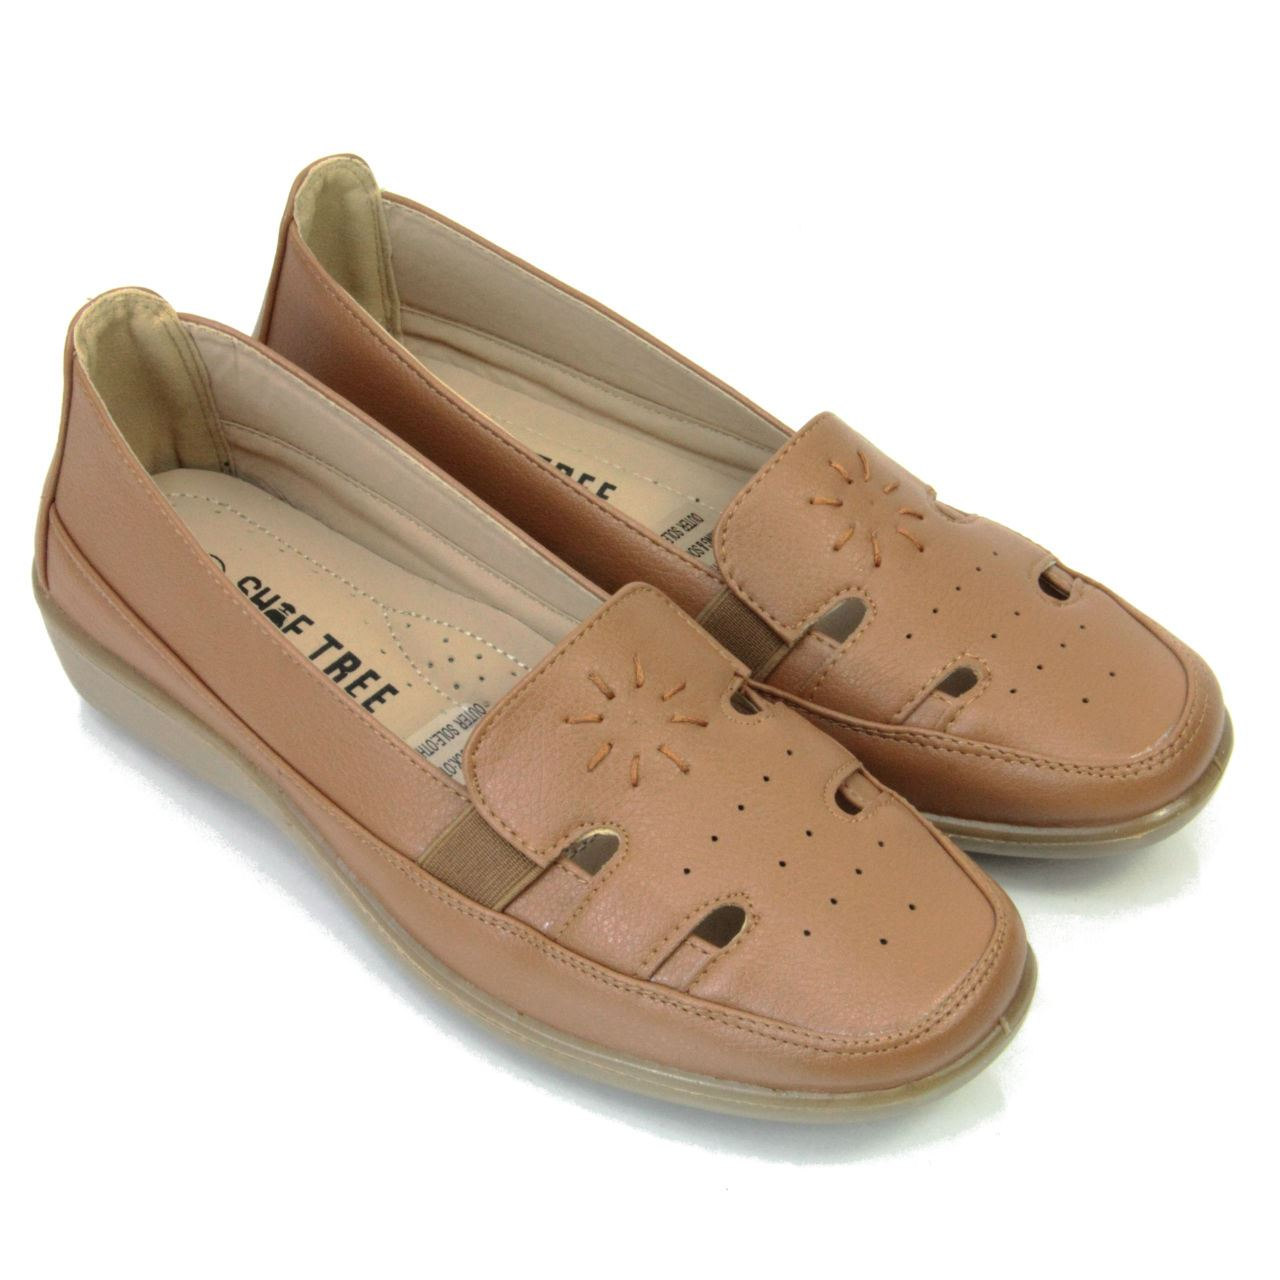 womens comfortable low wedge summer shoes faux leather various styles ebay